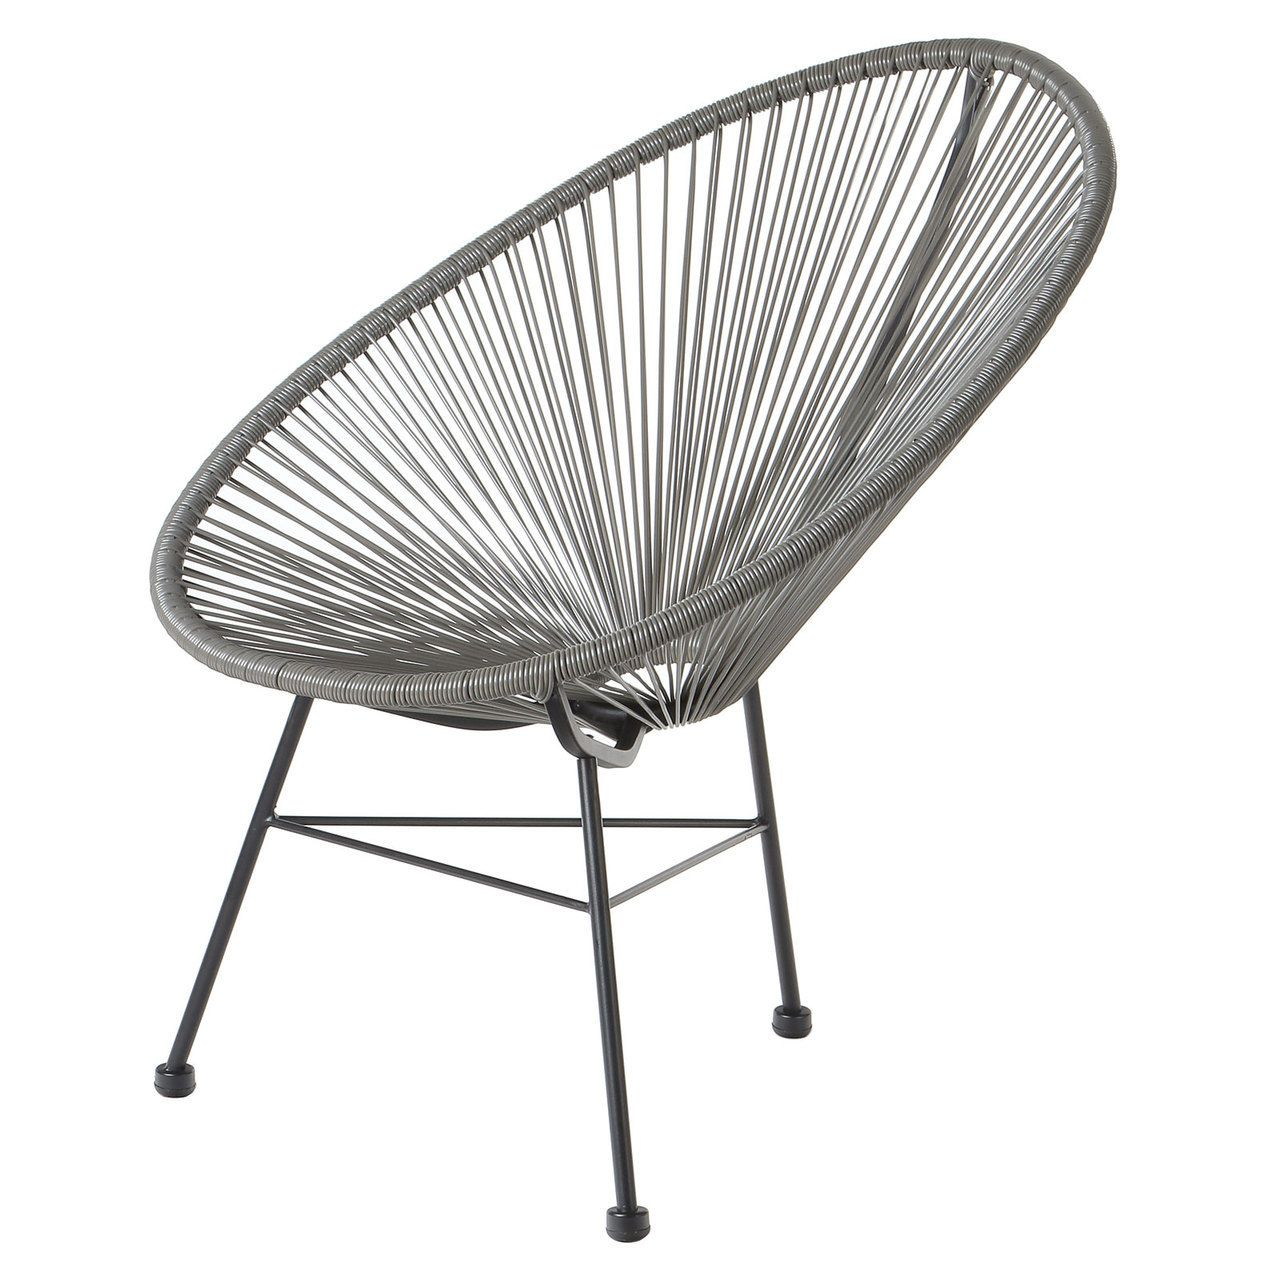 Acapulco Lounge Chair Metal Stool Grey Wire Basket Patio